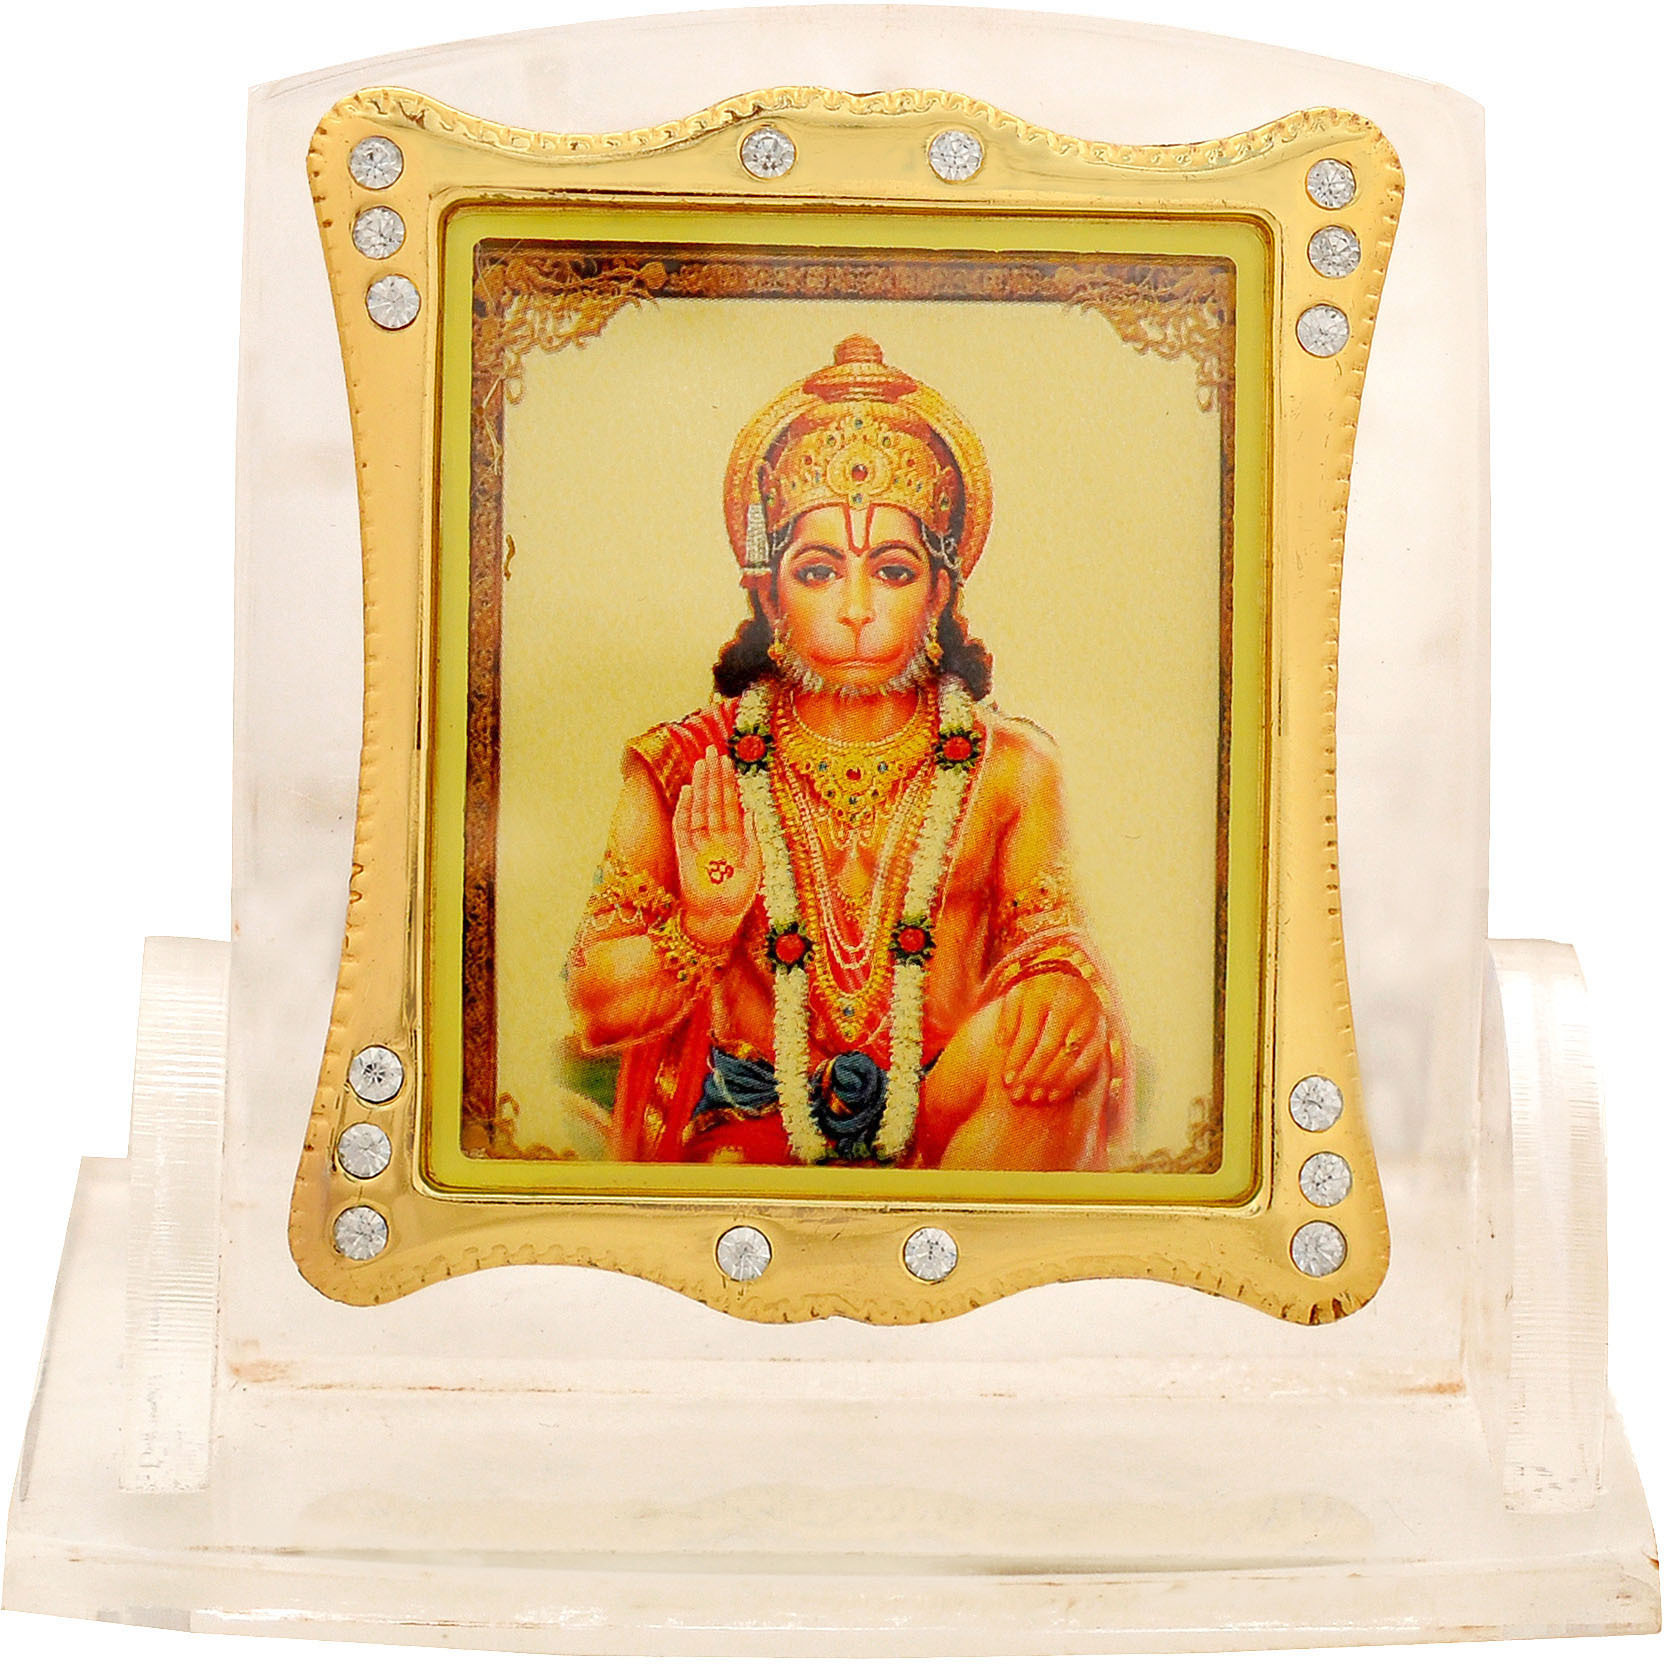 Leganza Hanuman Idol Showpiece for Home Office - Multicolor With White Base